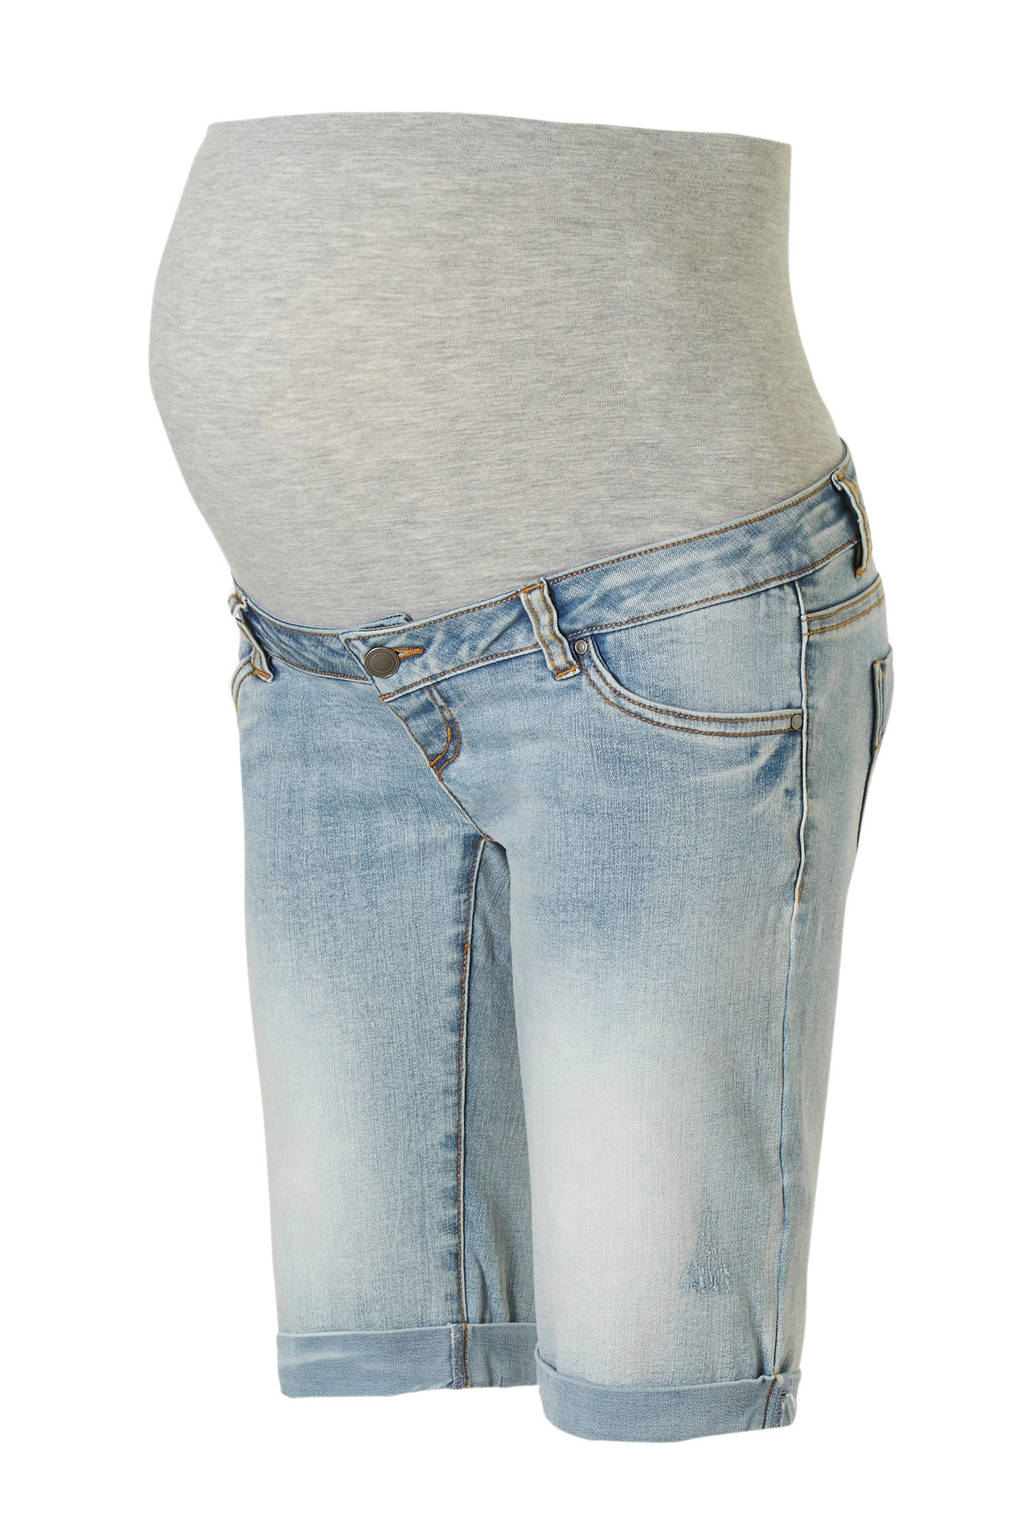 MAMA-LICIOUS short met buikband, Light blue denim